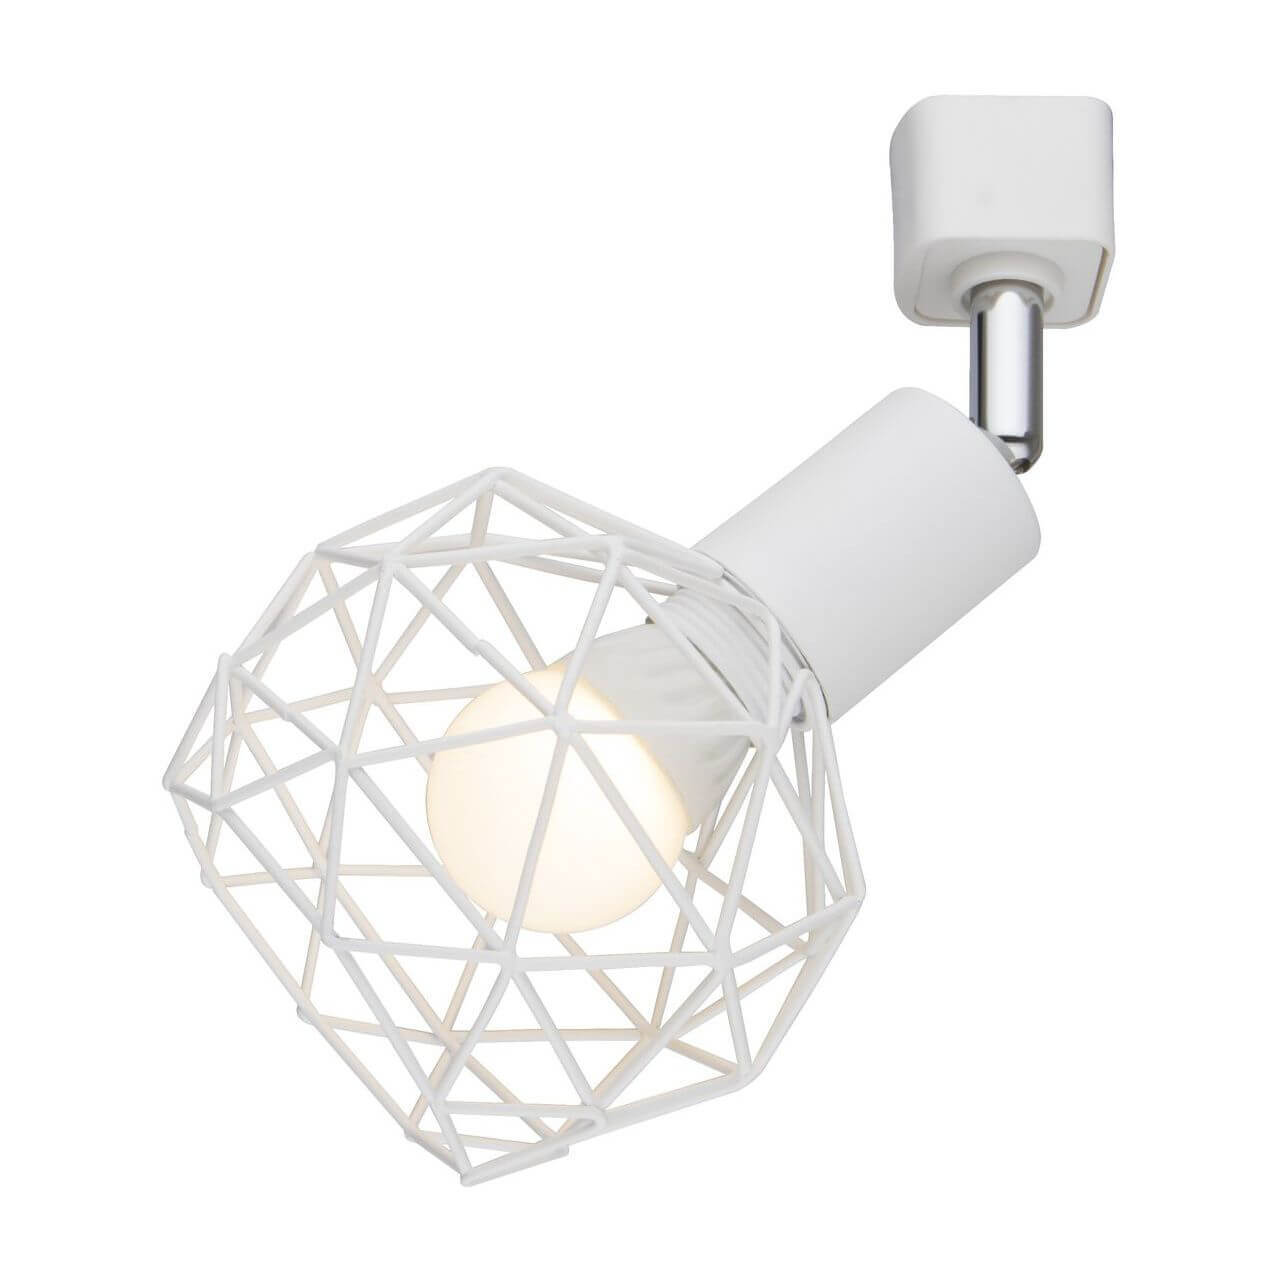 Светильник Arte Lamp A6141PL-1WH 6141